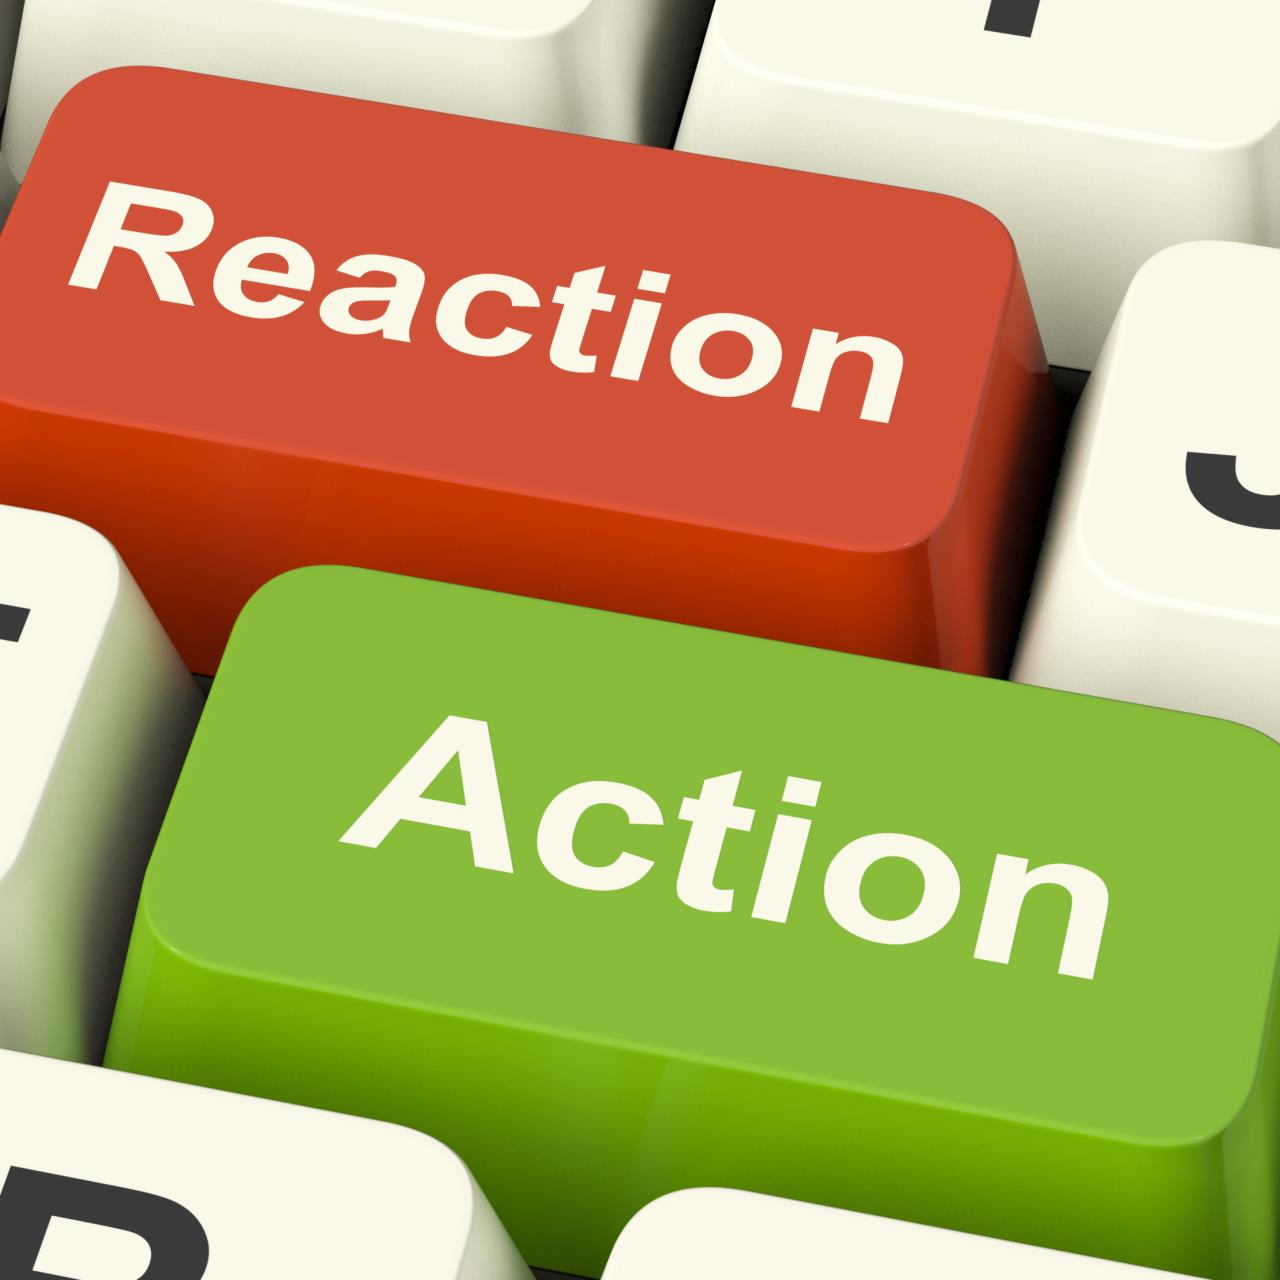 action-reaction-computer-keys-showing-control-feedback-and-response_f1U3uMw_